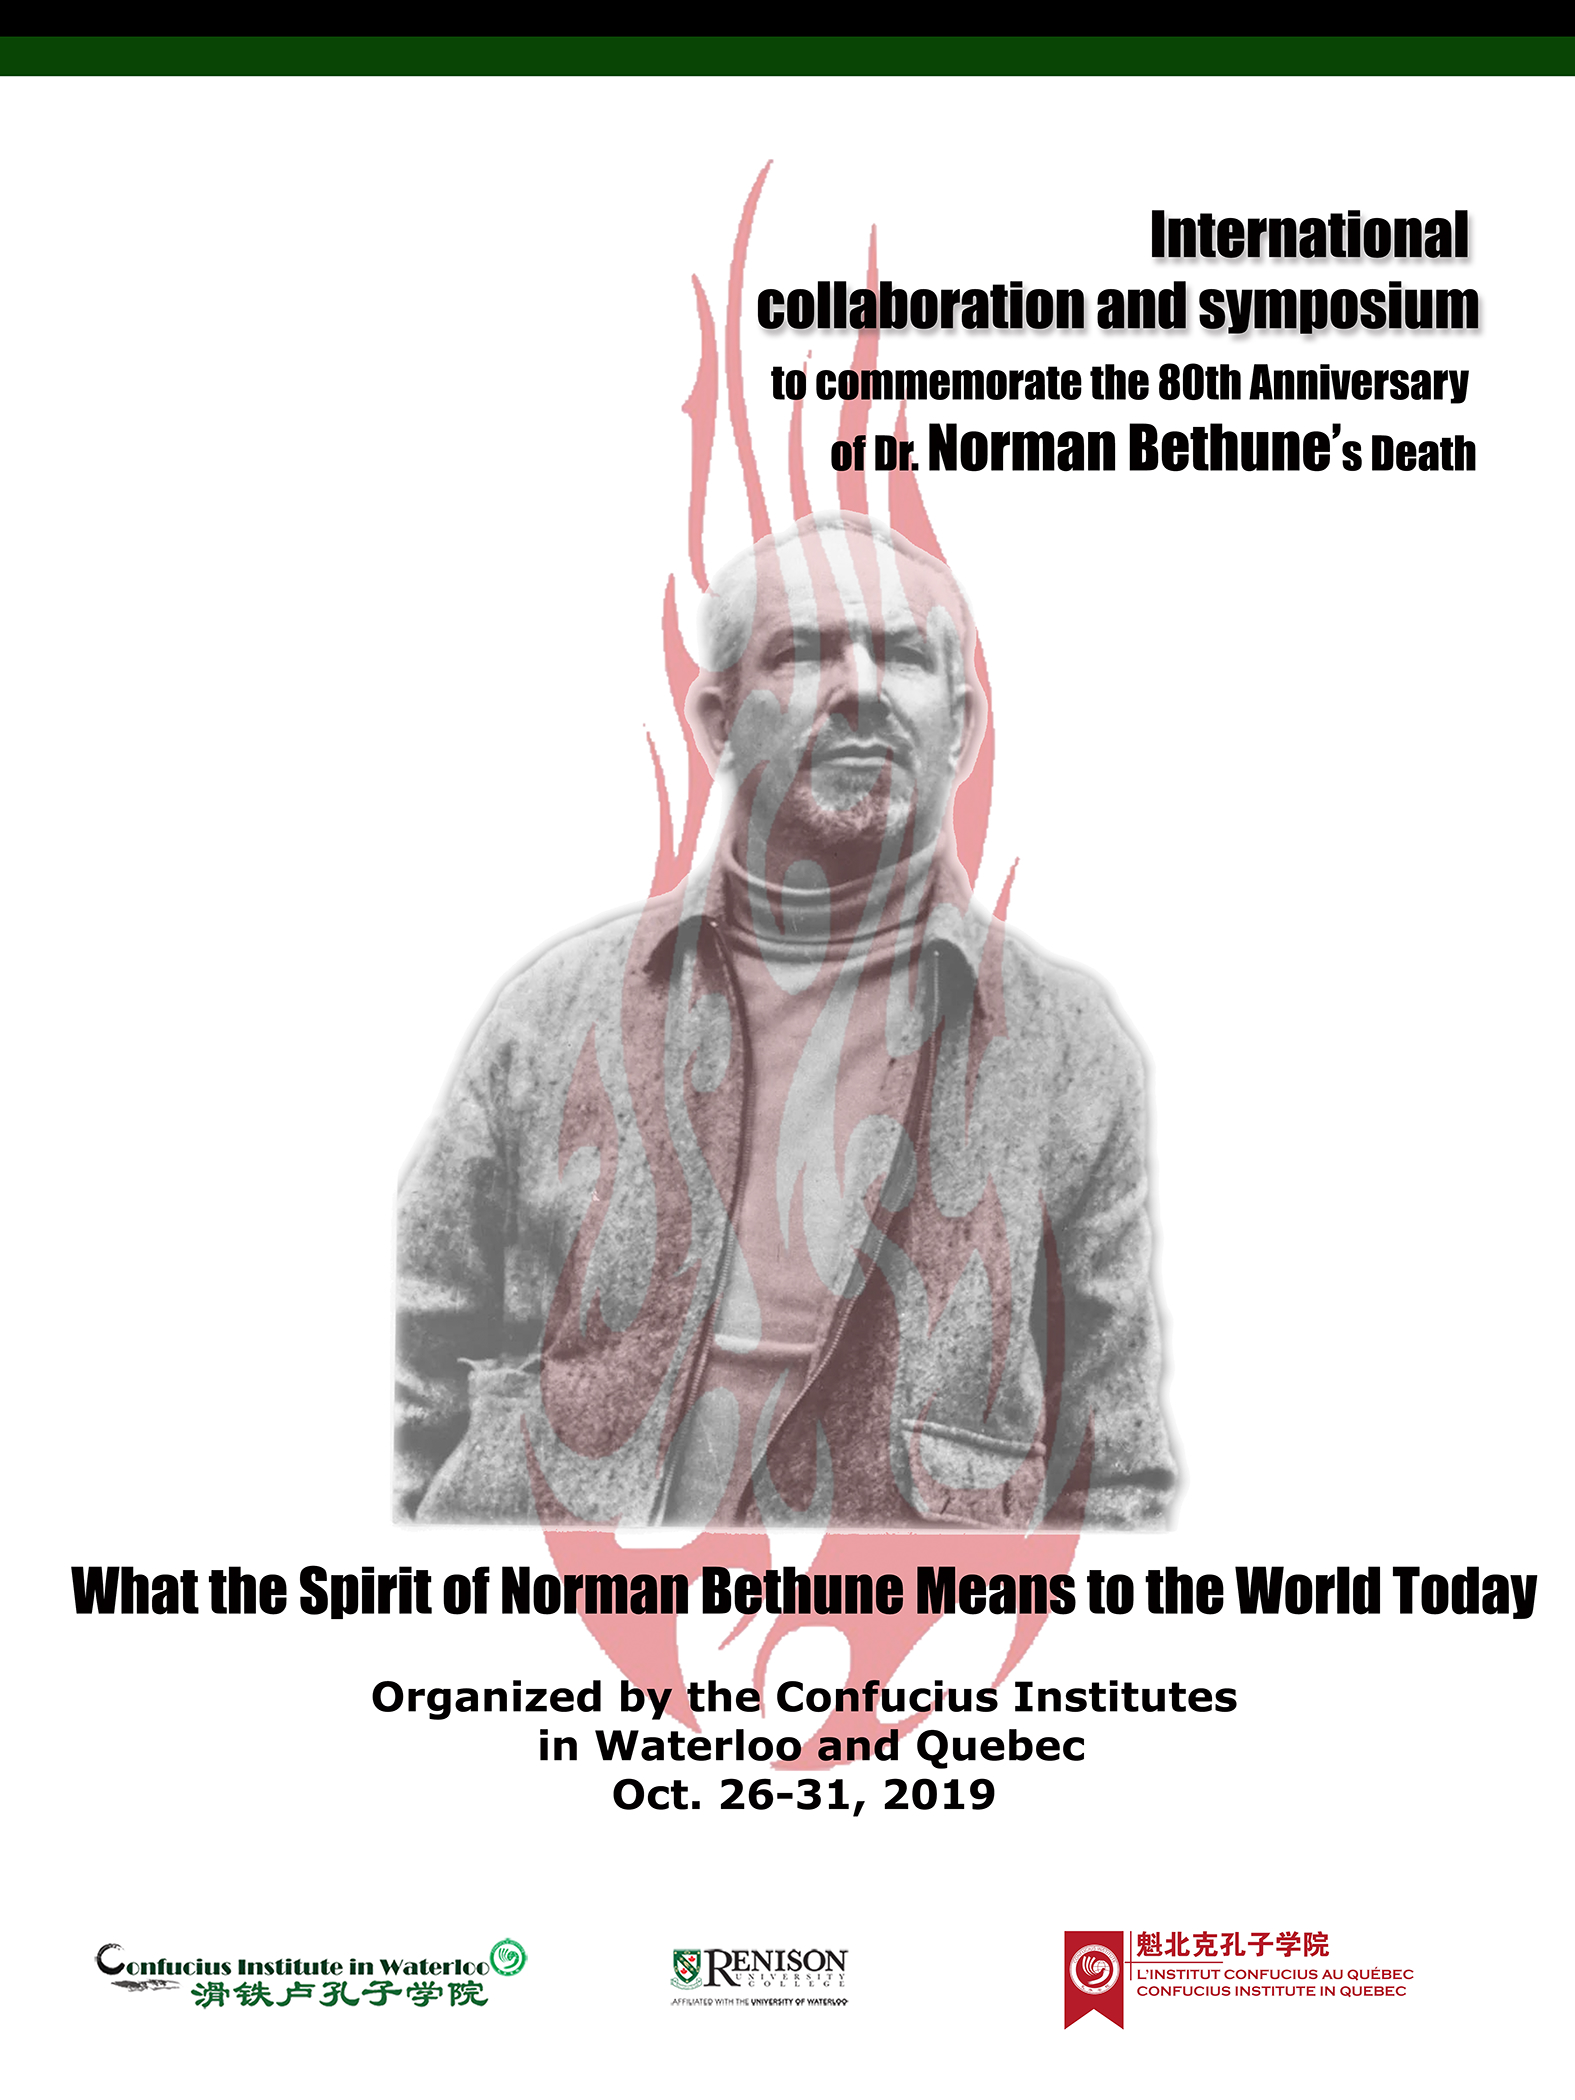 conference poster with information